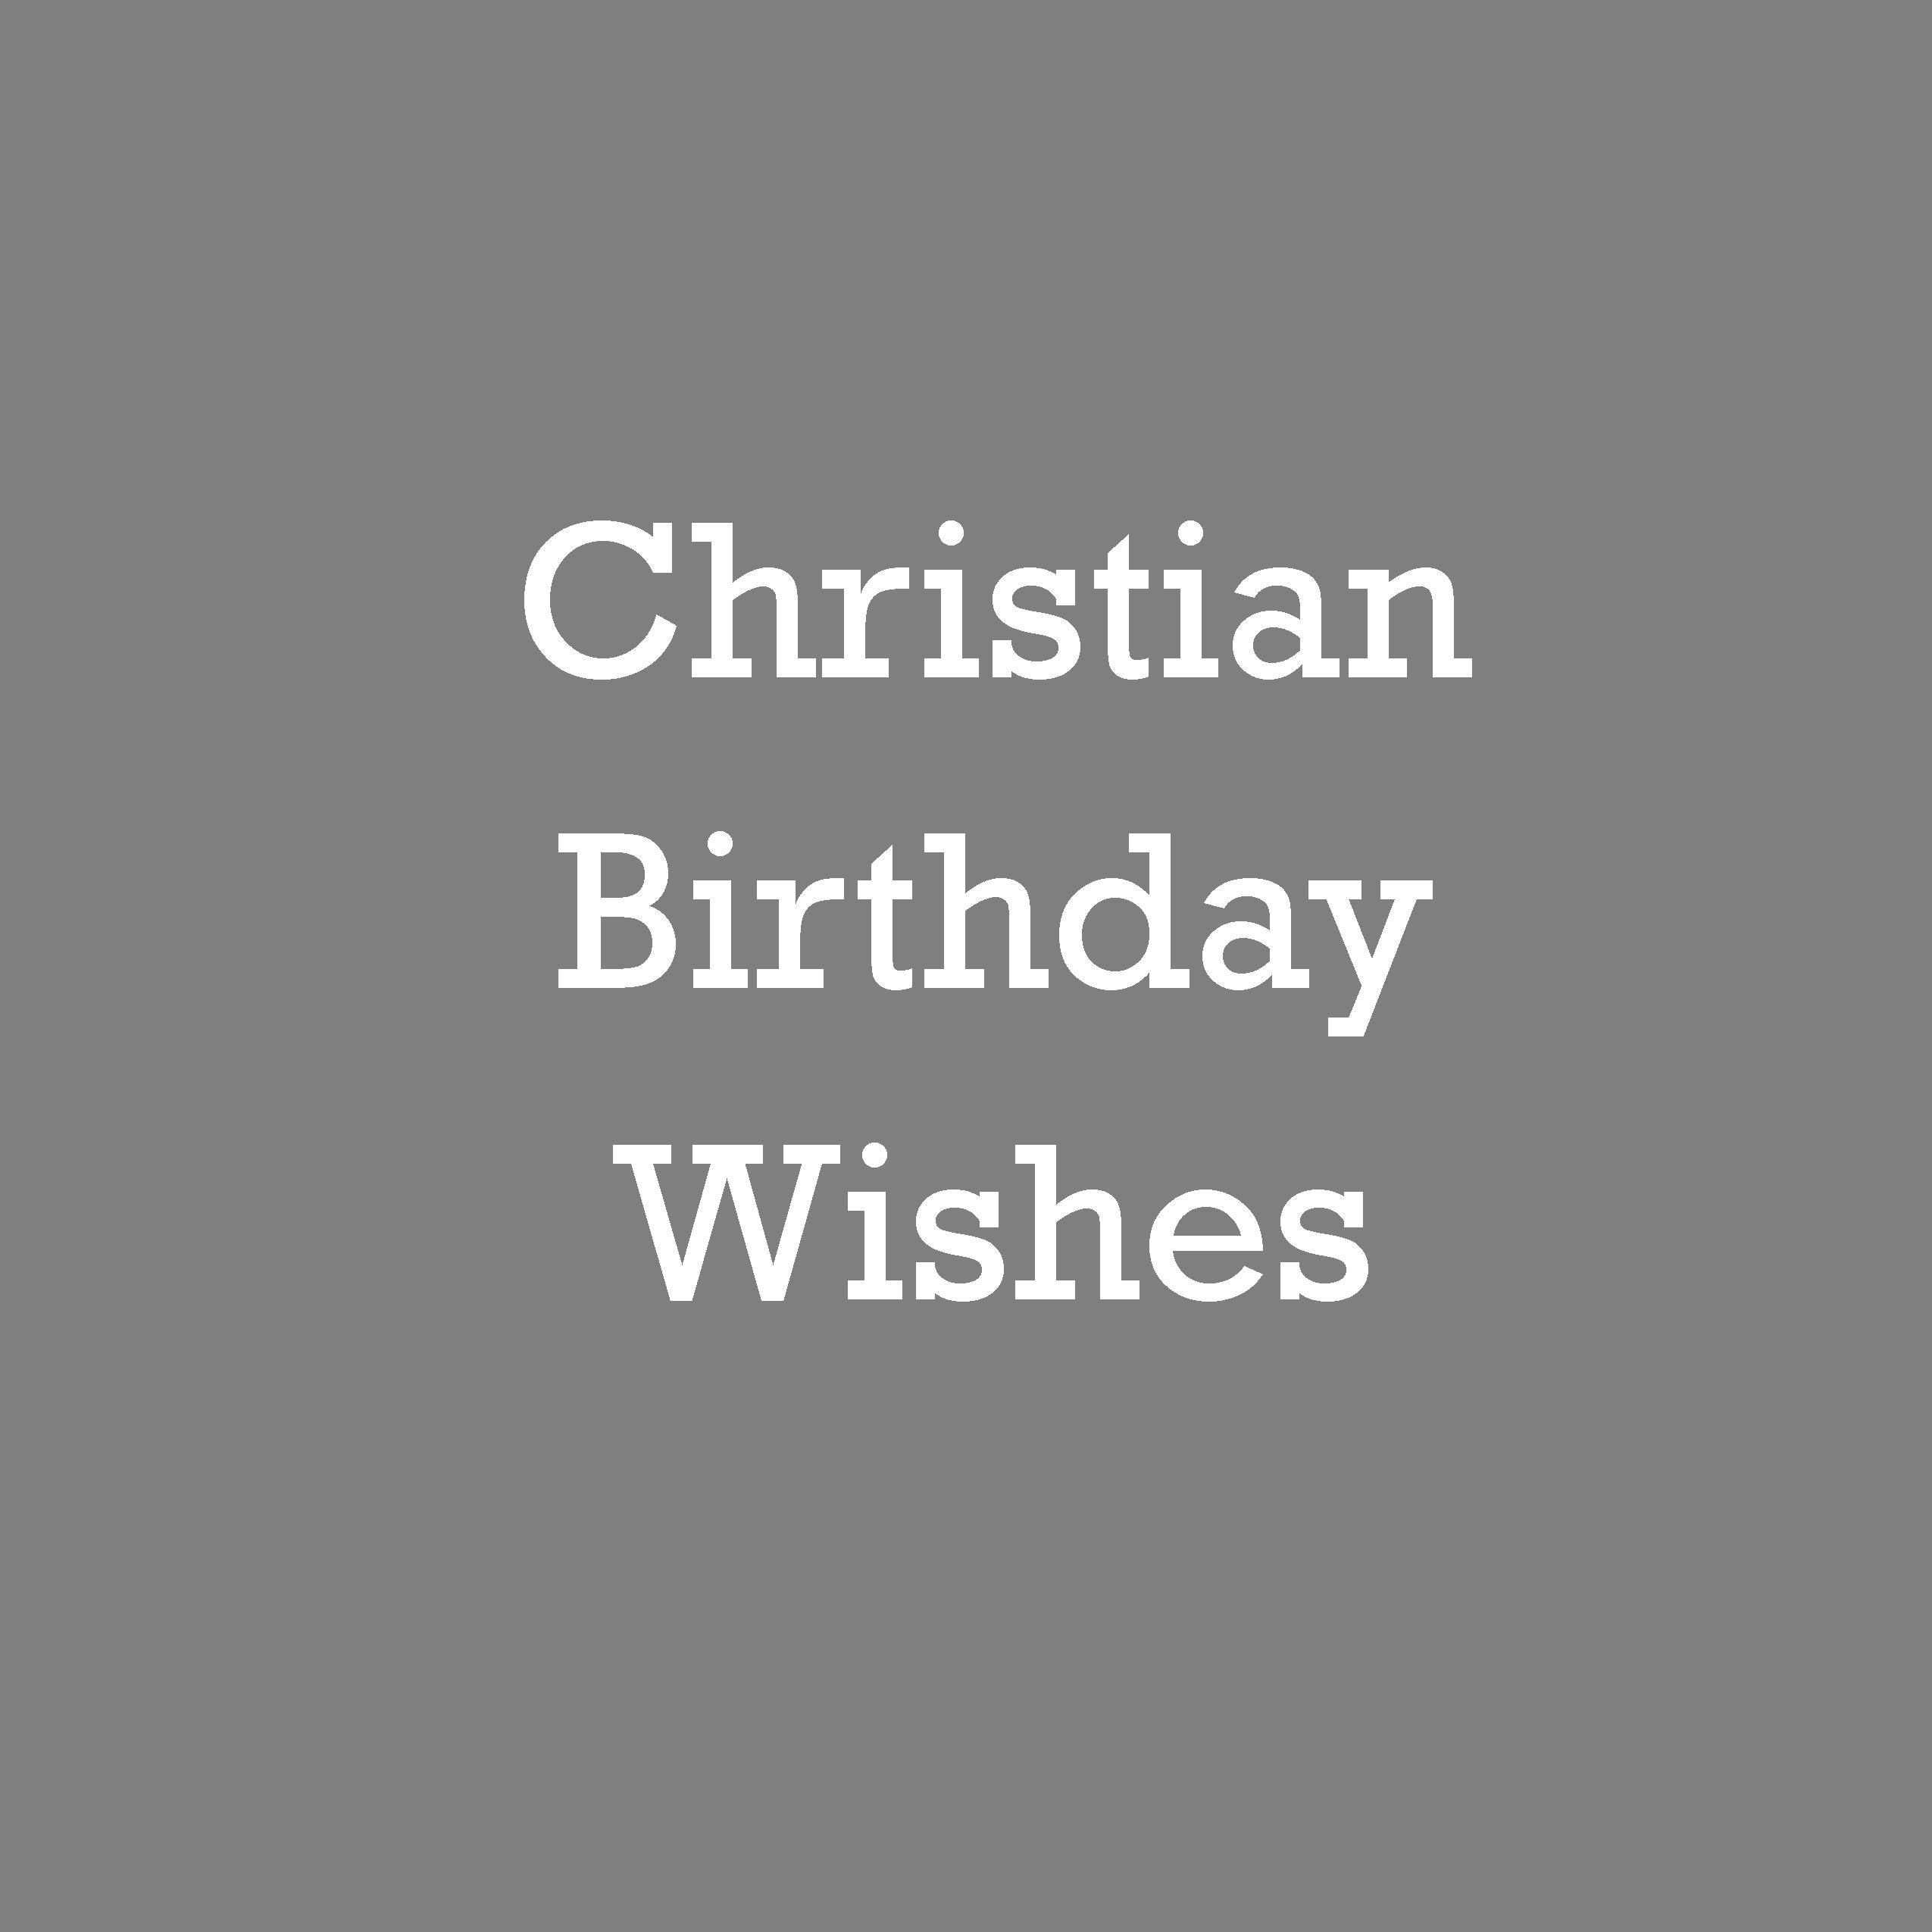 Inspirational Birthday Quotes. QuotesGram